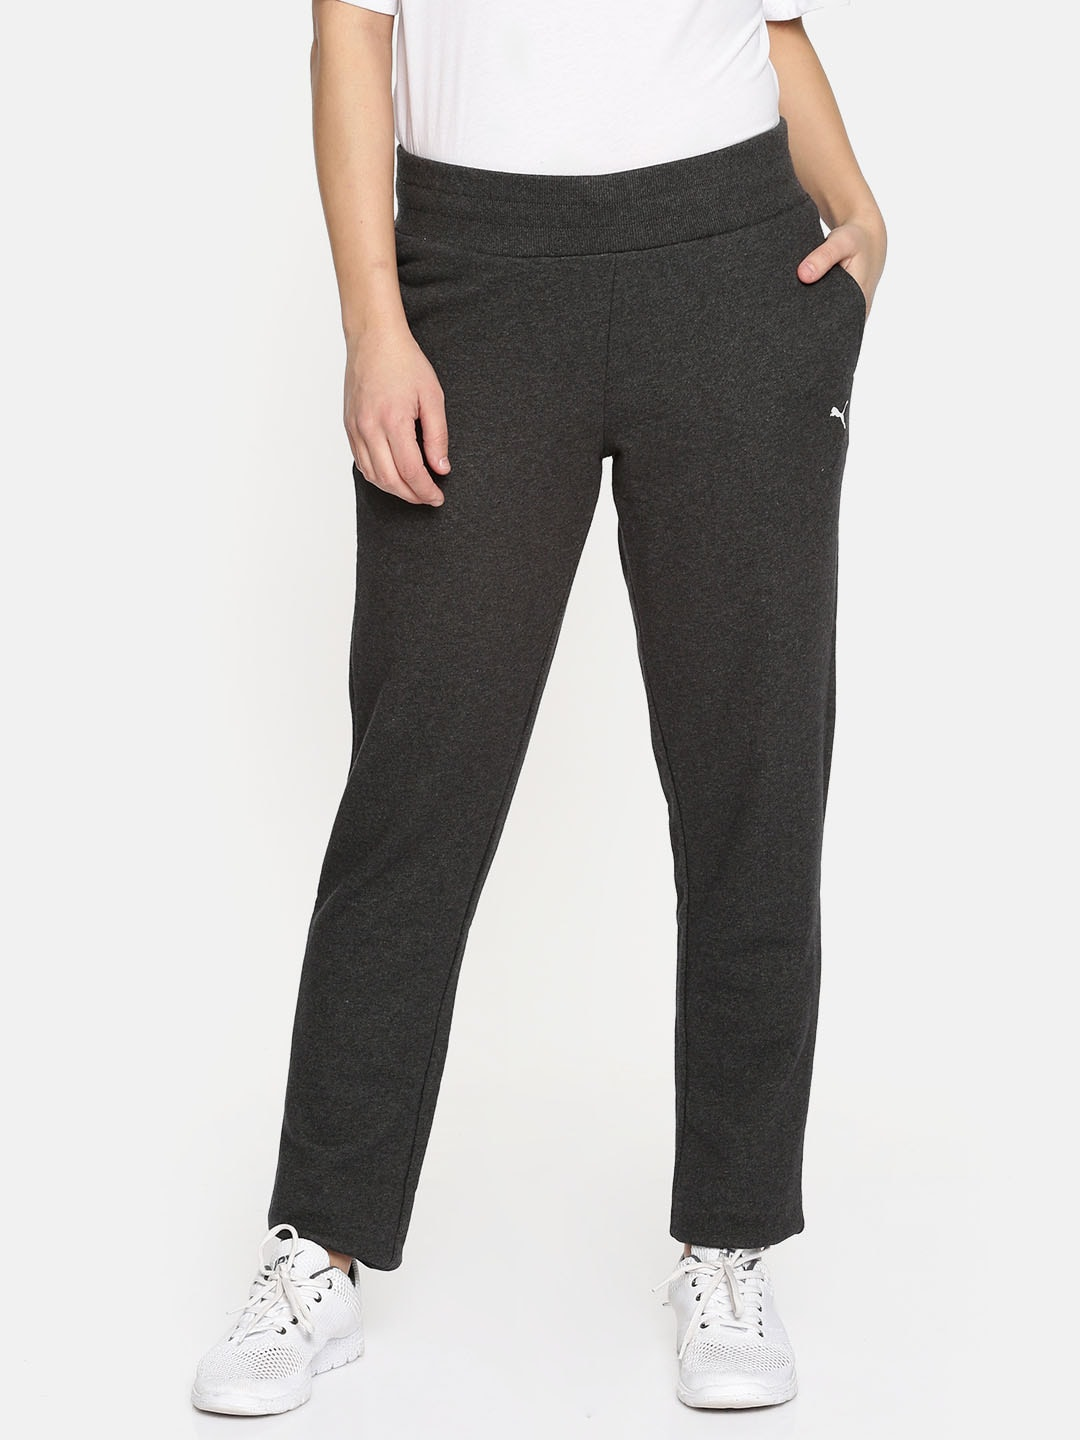 ffd861fb8a12 Puma Sports Women Apparel Track Pants Pants - Buy Puma Sports Women Apparel Track  Pants Pants online in India